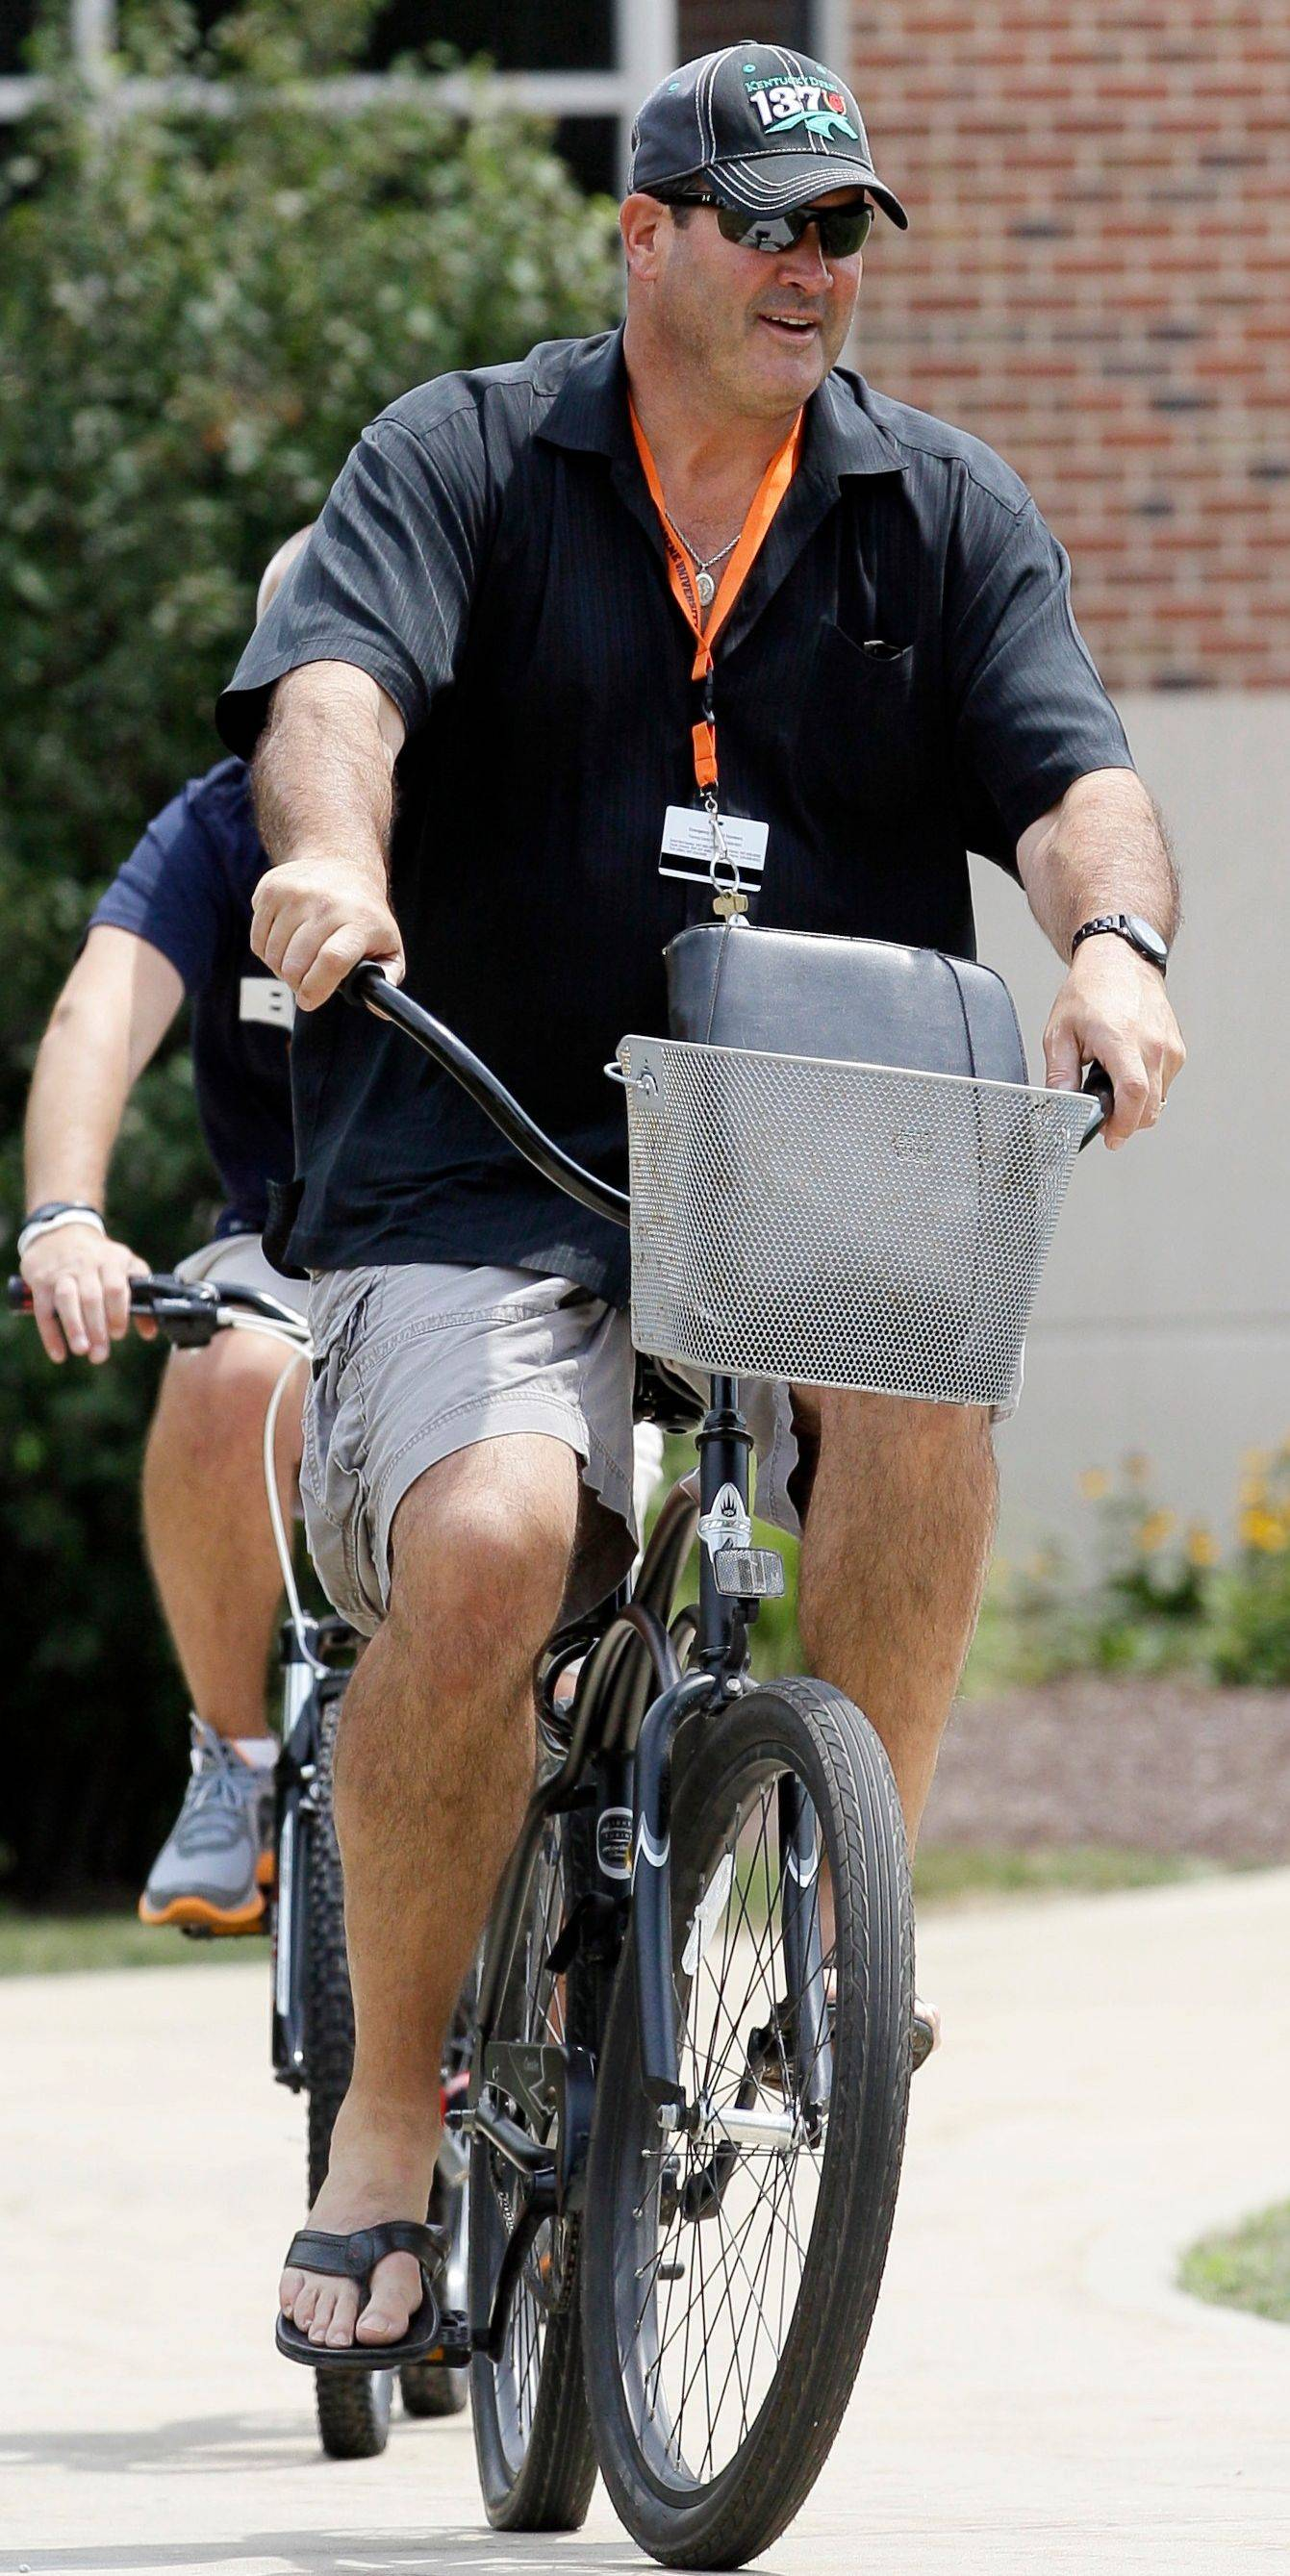 Offensive coordinator Mike Tice rides a bicycle at Olivet Nazarene University in Bourbonnais on Tuesday. Training camp starts in earnest Thursday.